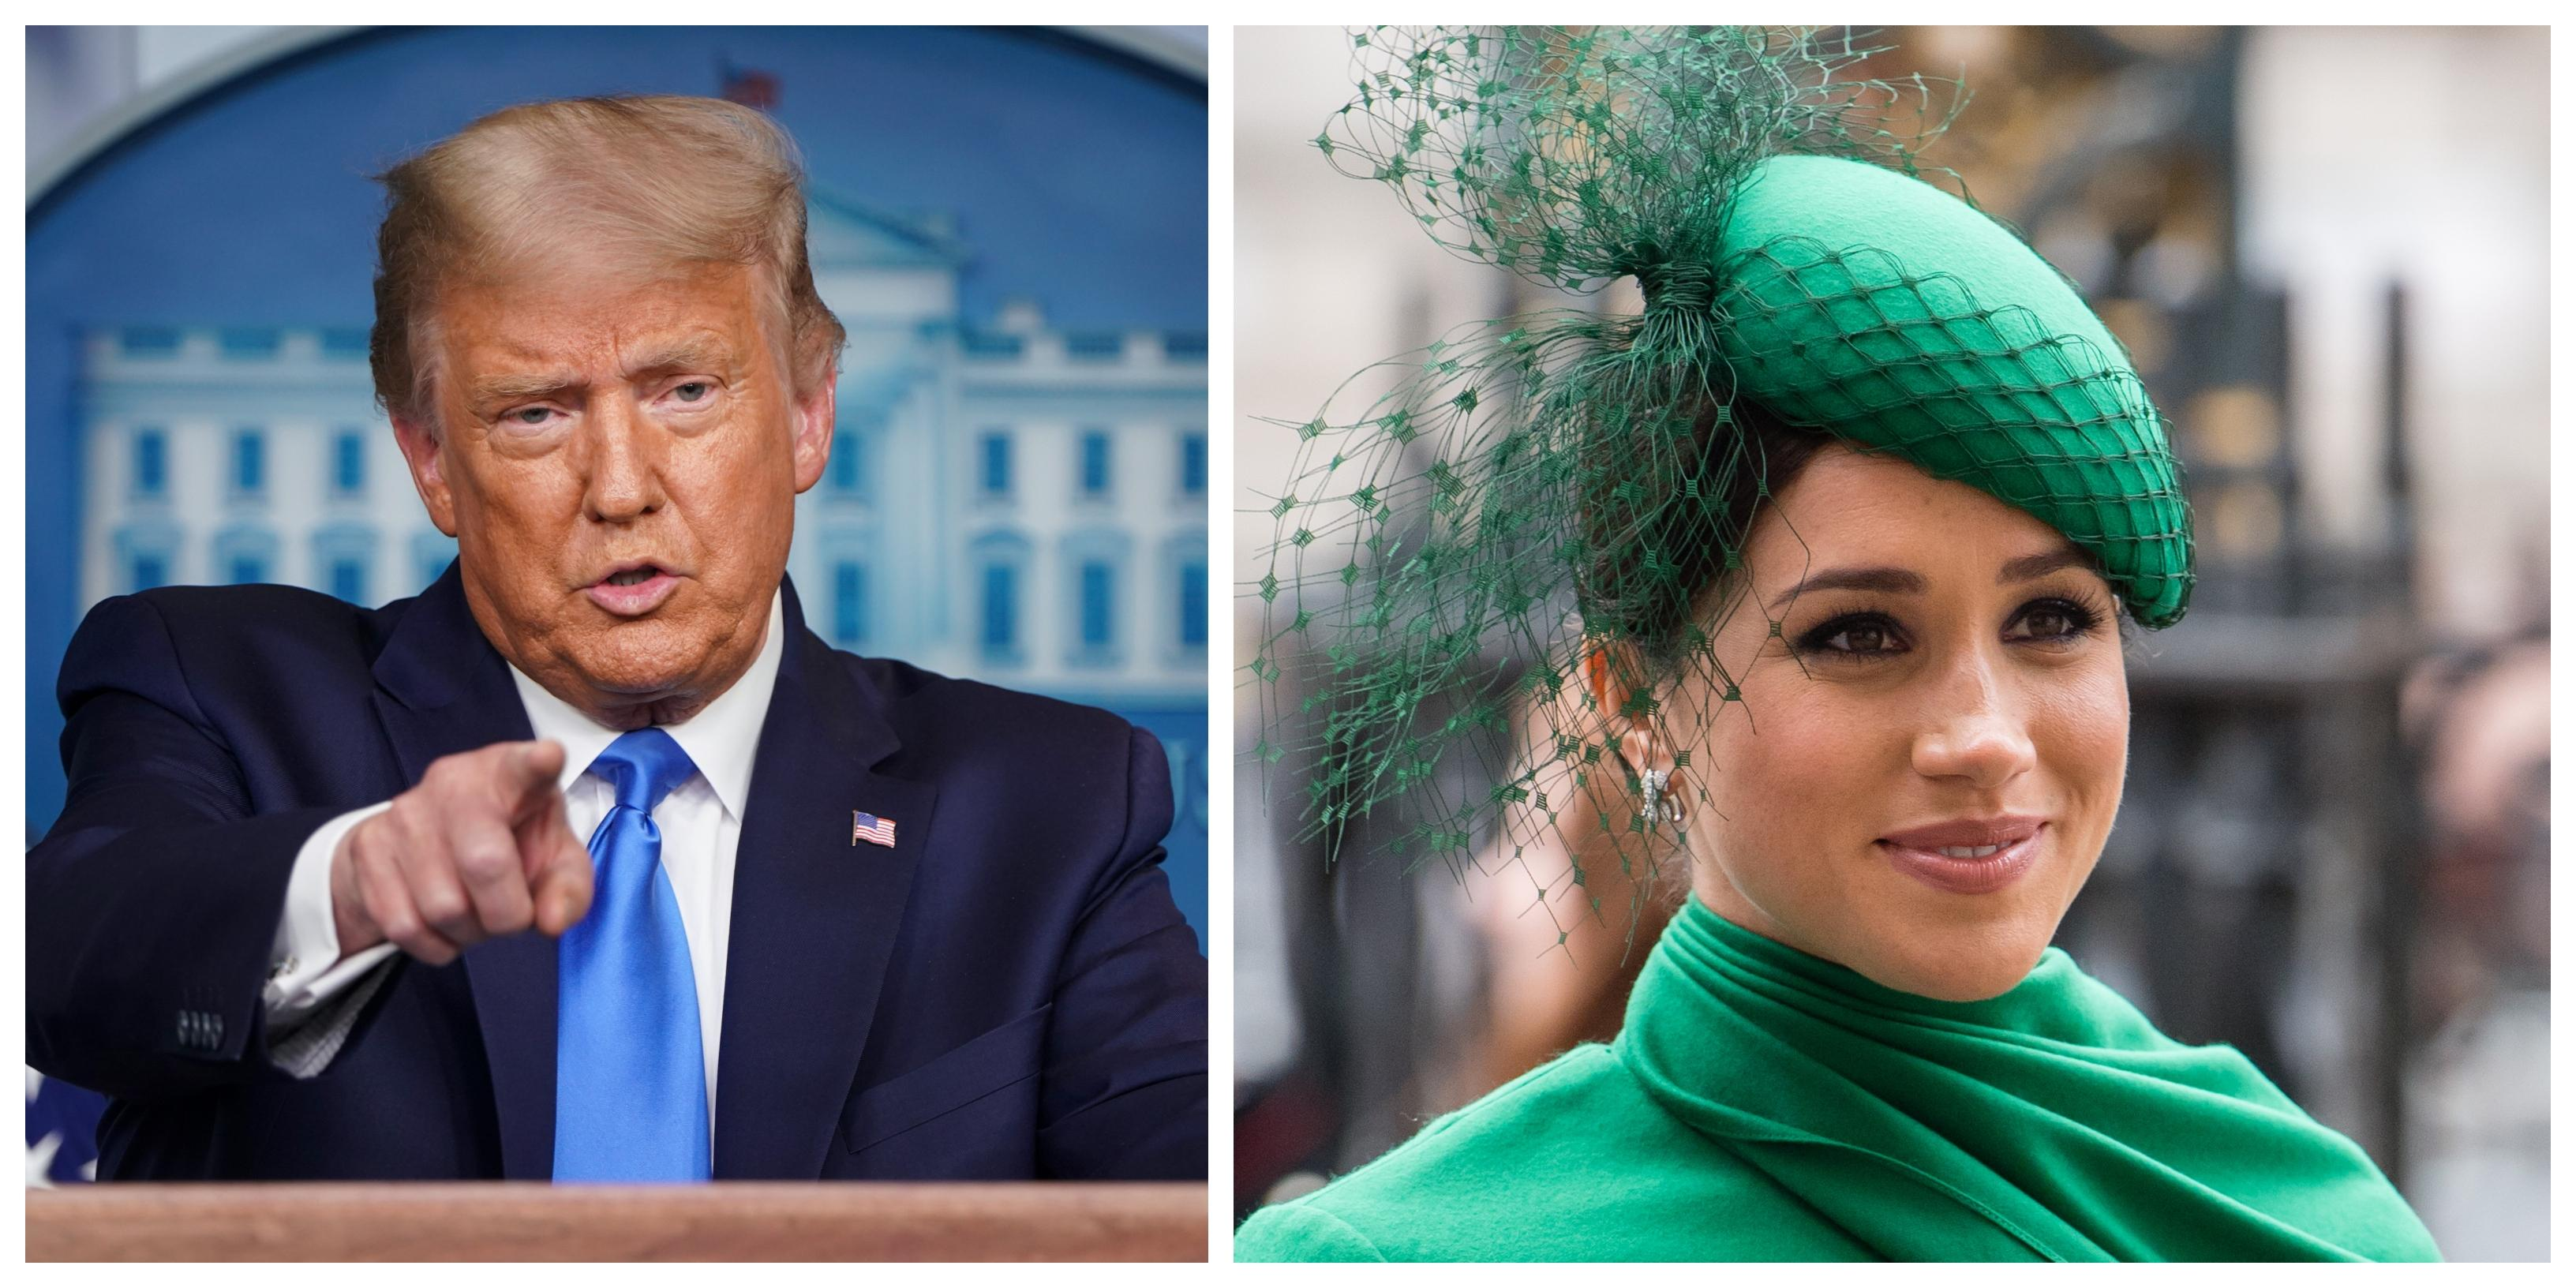 'I wish Harry luck': Donald Trump 'not a fan' of Meghan